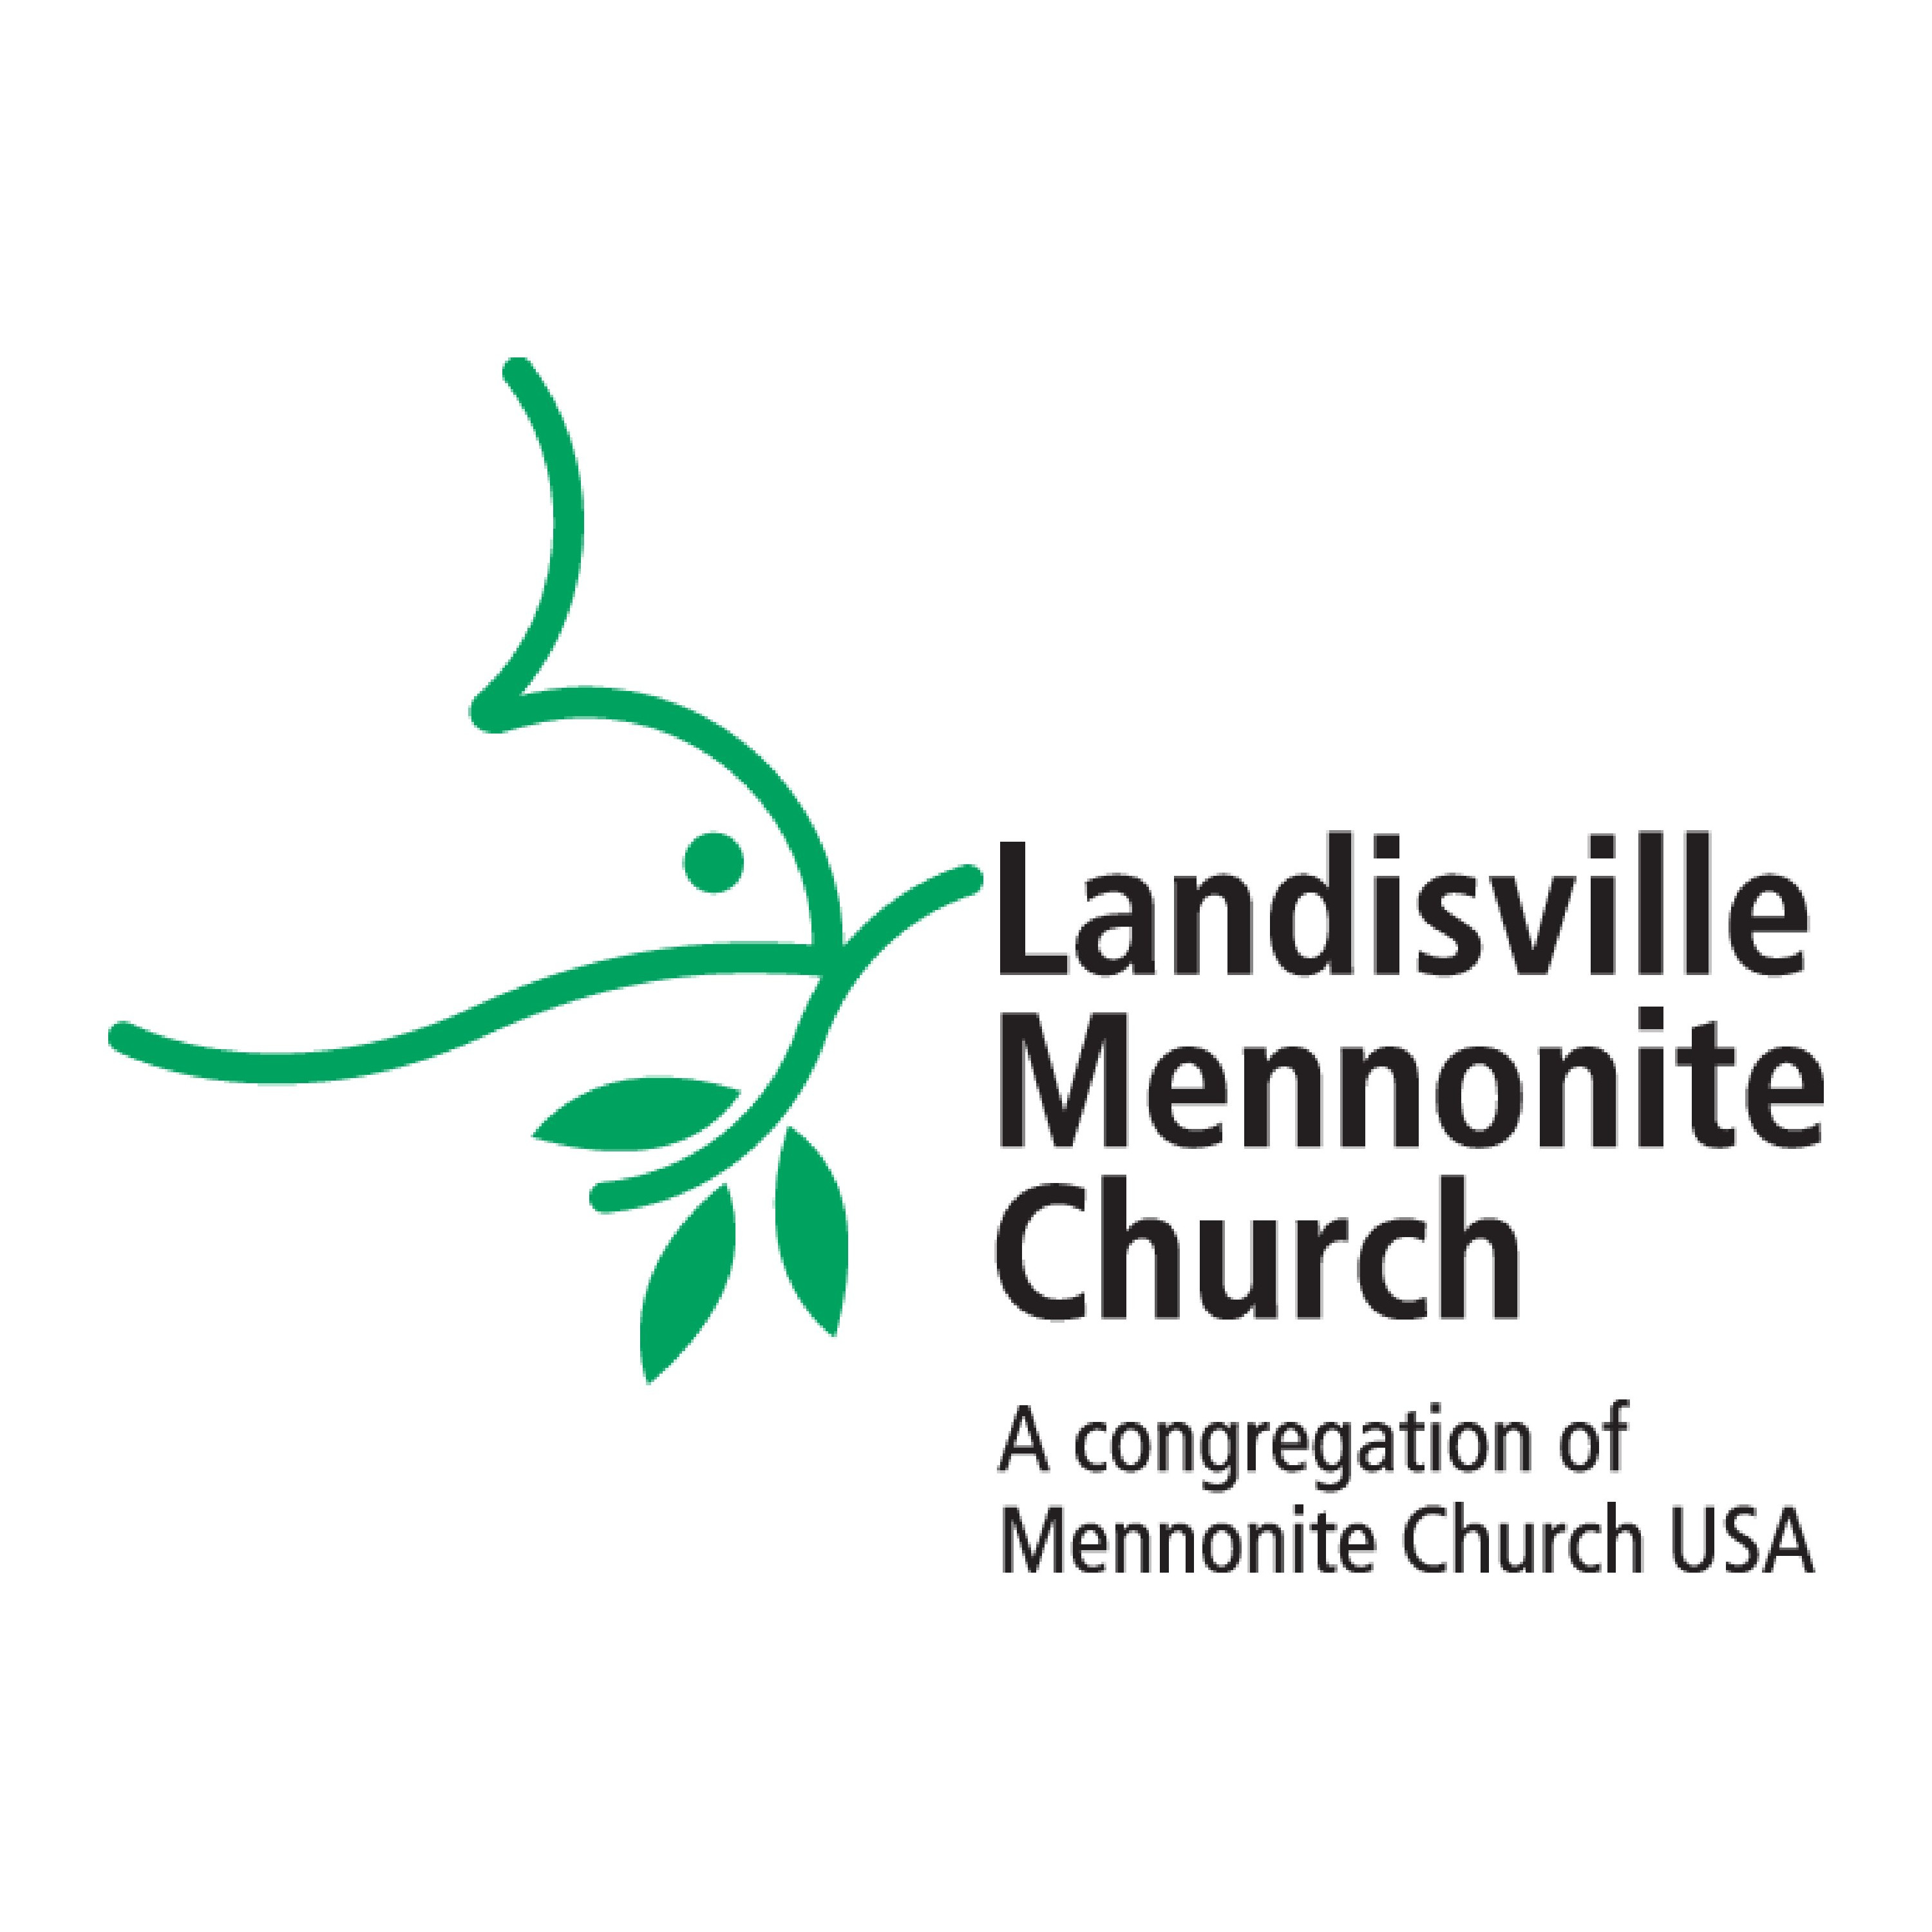 Landisville Mennonite Church Sermons